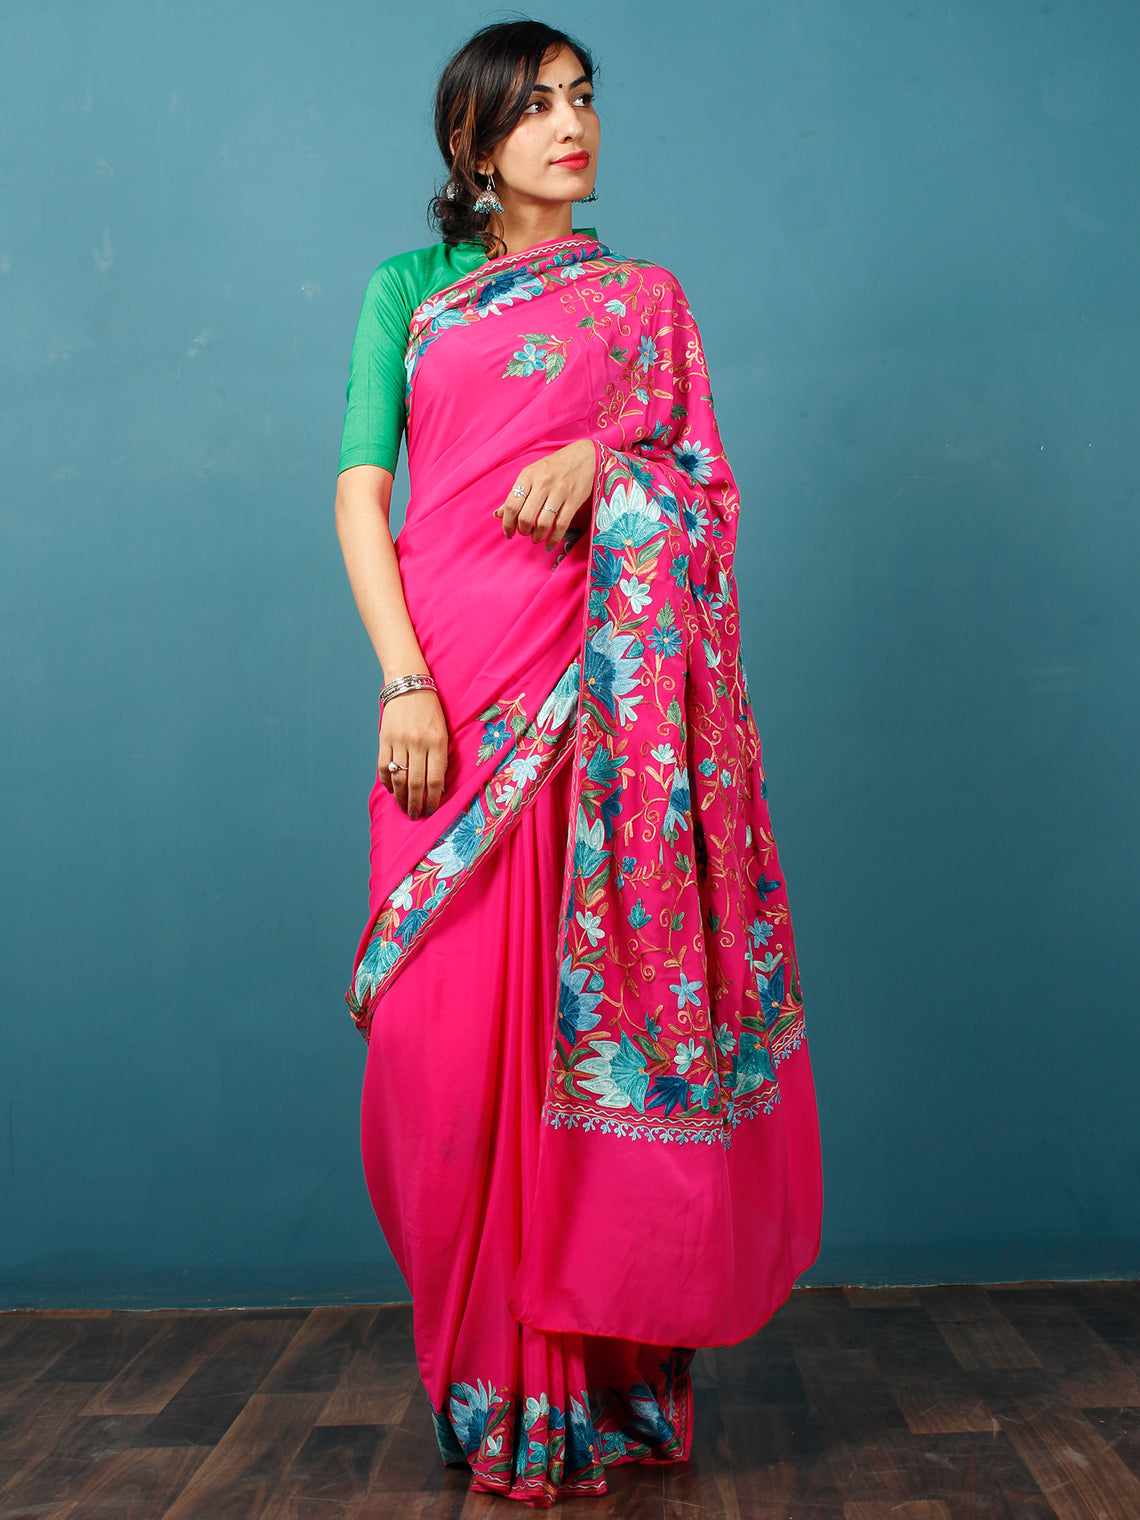 Pink Blue Green Aari Embroidered Crepe Silk Saree From Kashmir - S031703077